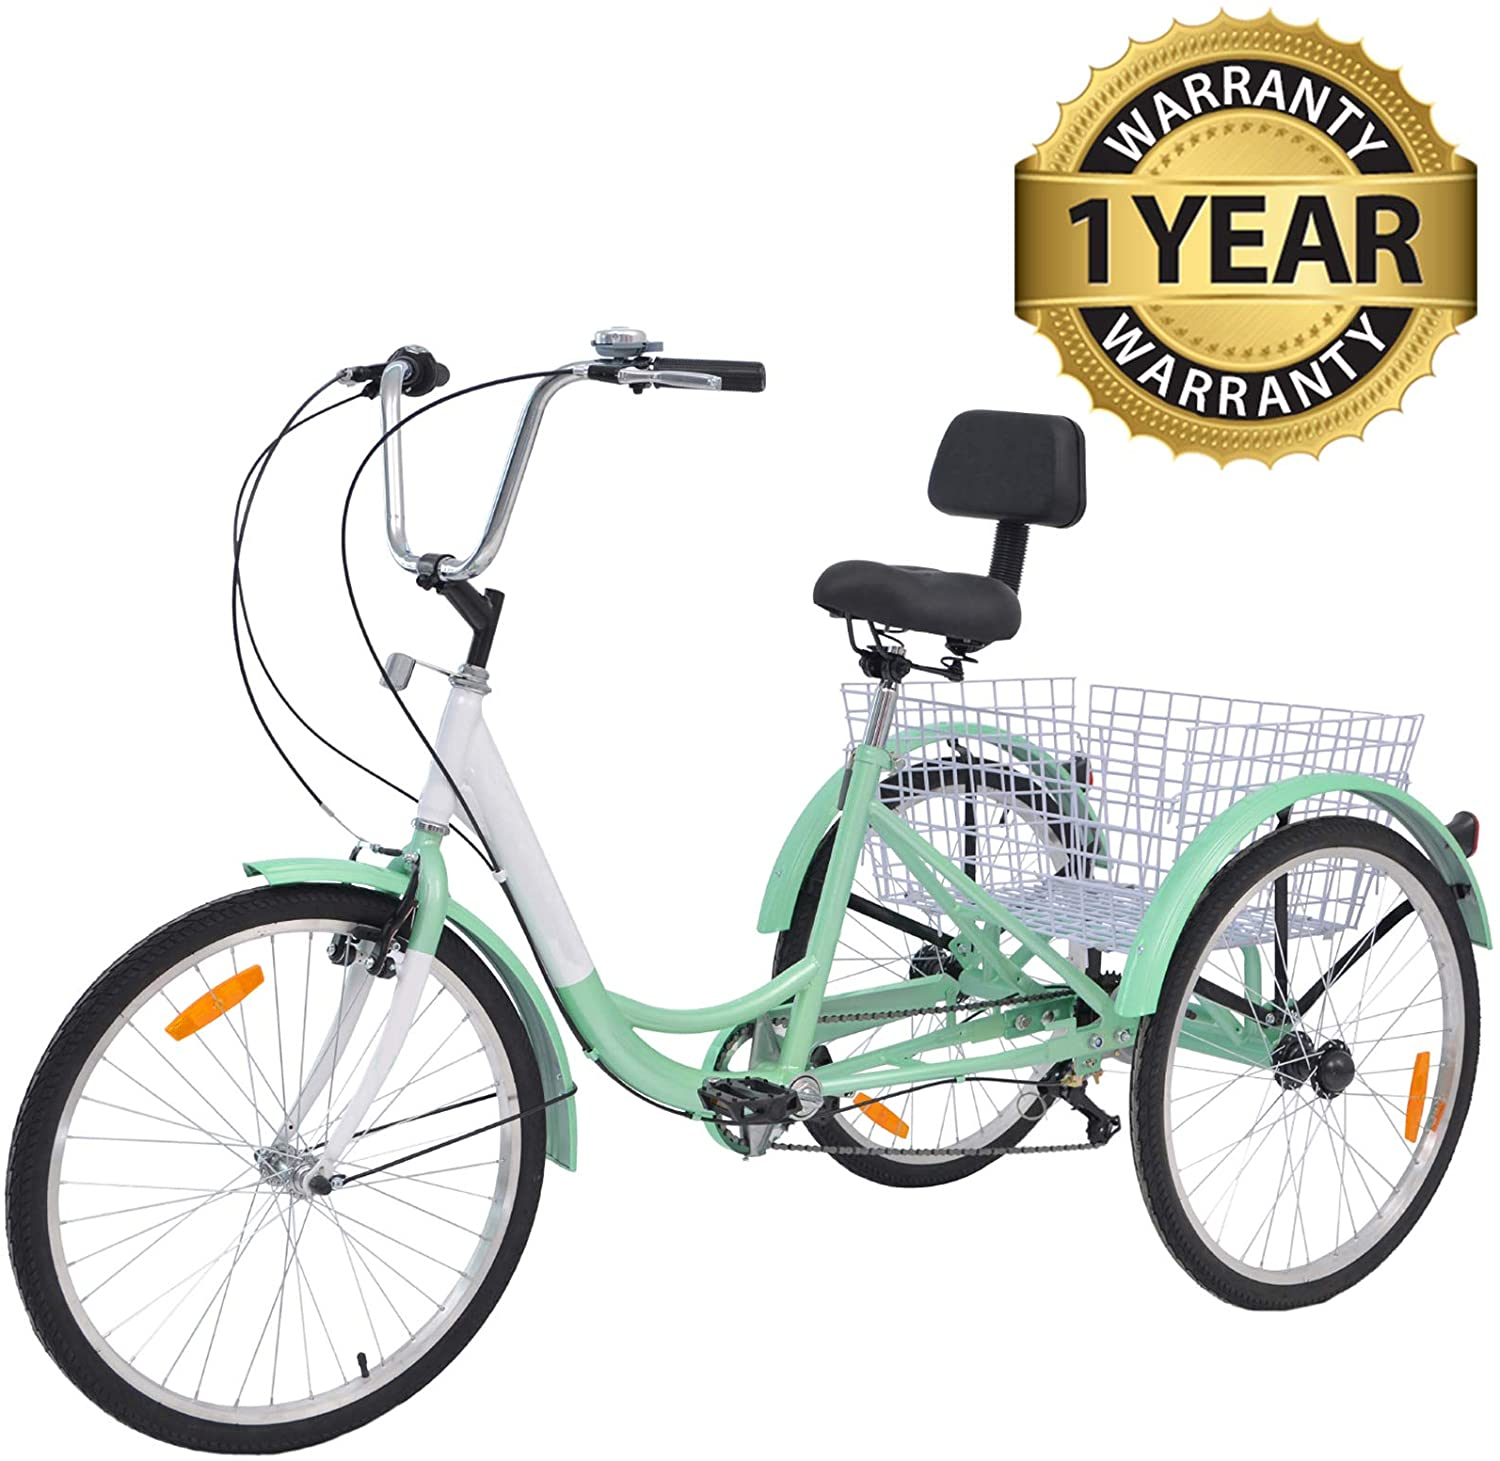 Review of Slsy Adult Tricycles 7 Speed, Adult Trikes 20/24 / 26 inch 3 Wheel Bikes